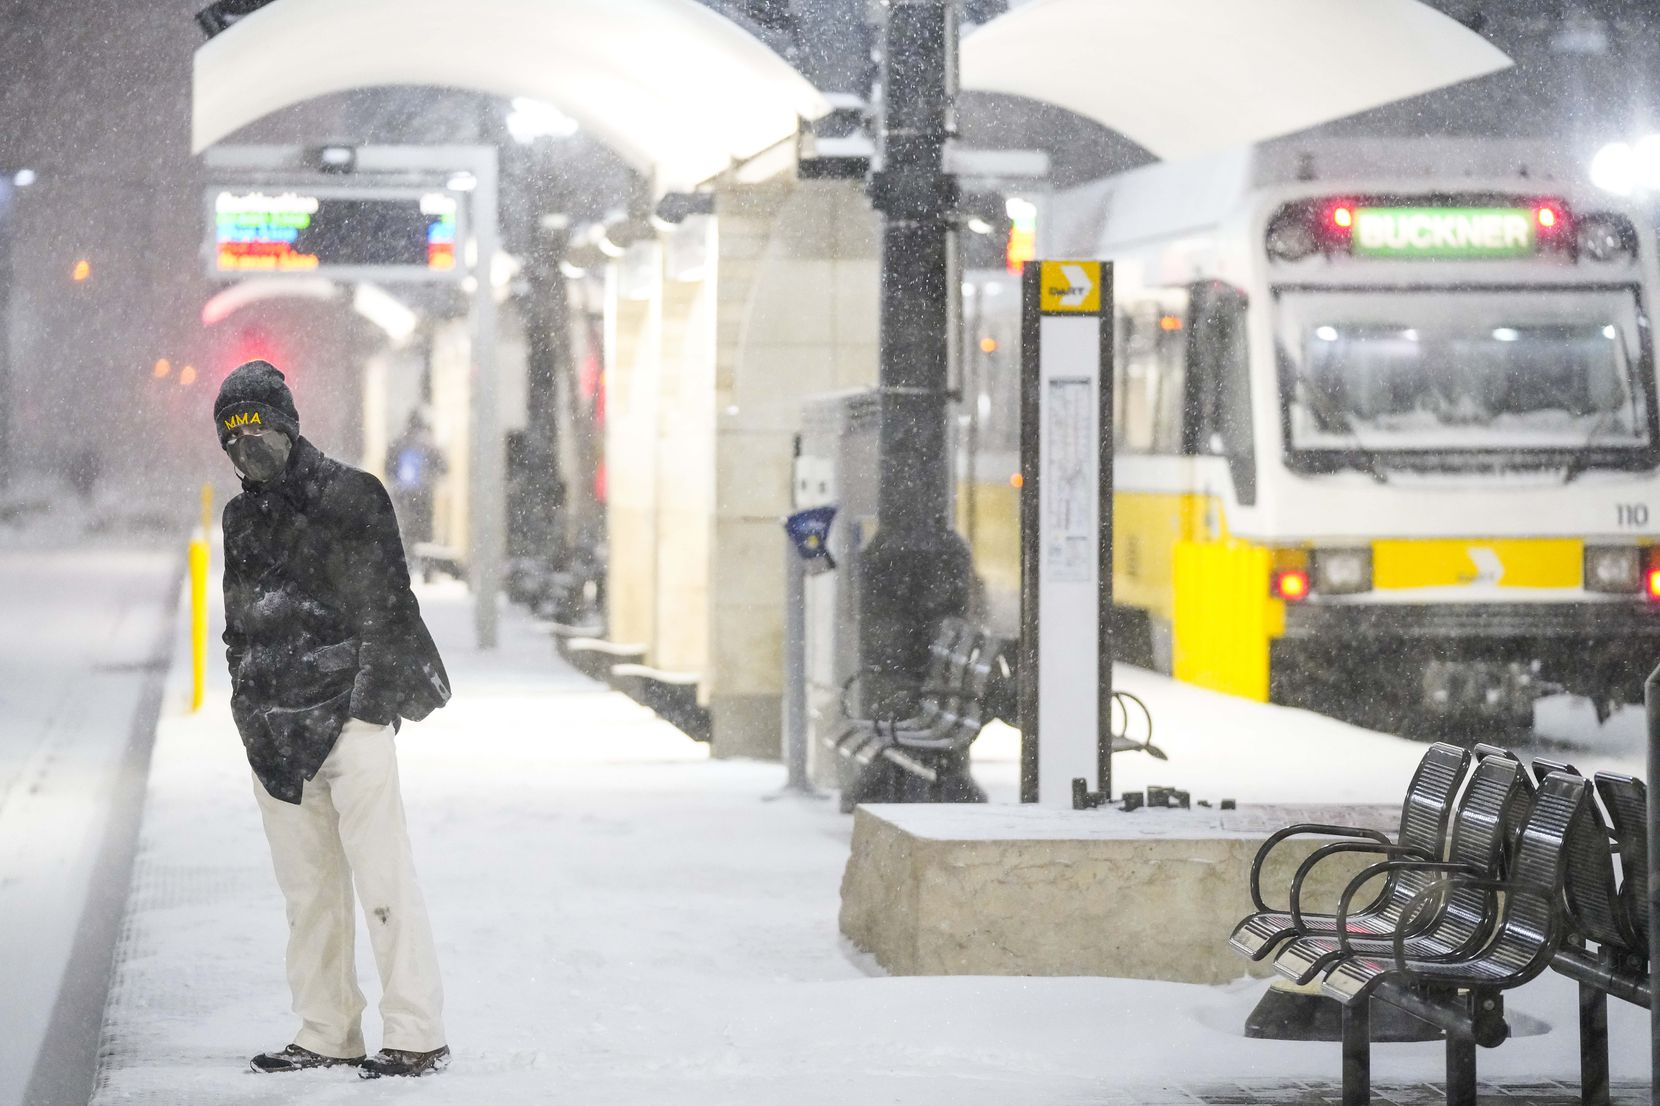 Victor Escamilla looks down the tracks as people wait in driving snow at the Pearl/Arts District station as a winter storm brings snow and freezing temperatures to North Texas on Sunday, Feb. 14, 2021, in Dallas.  DART suspended all rail operations Sunday night.